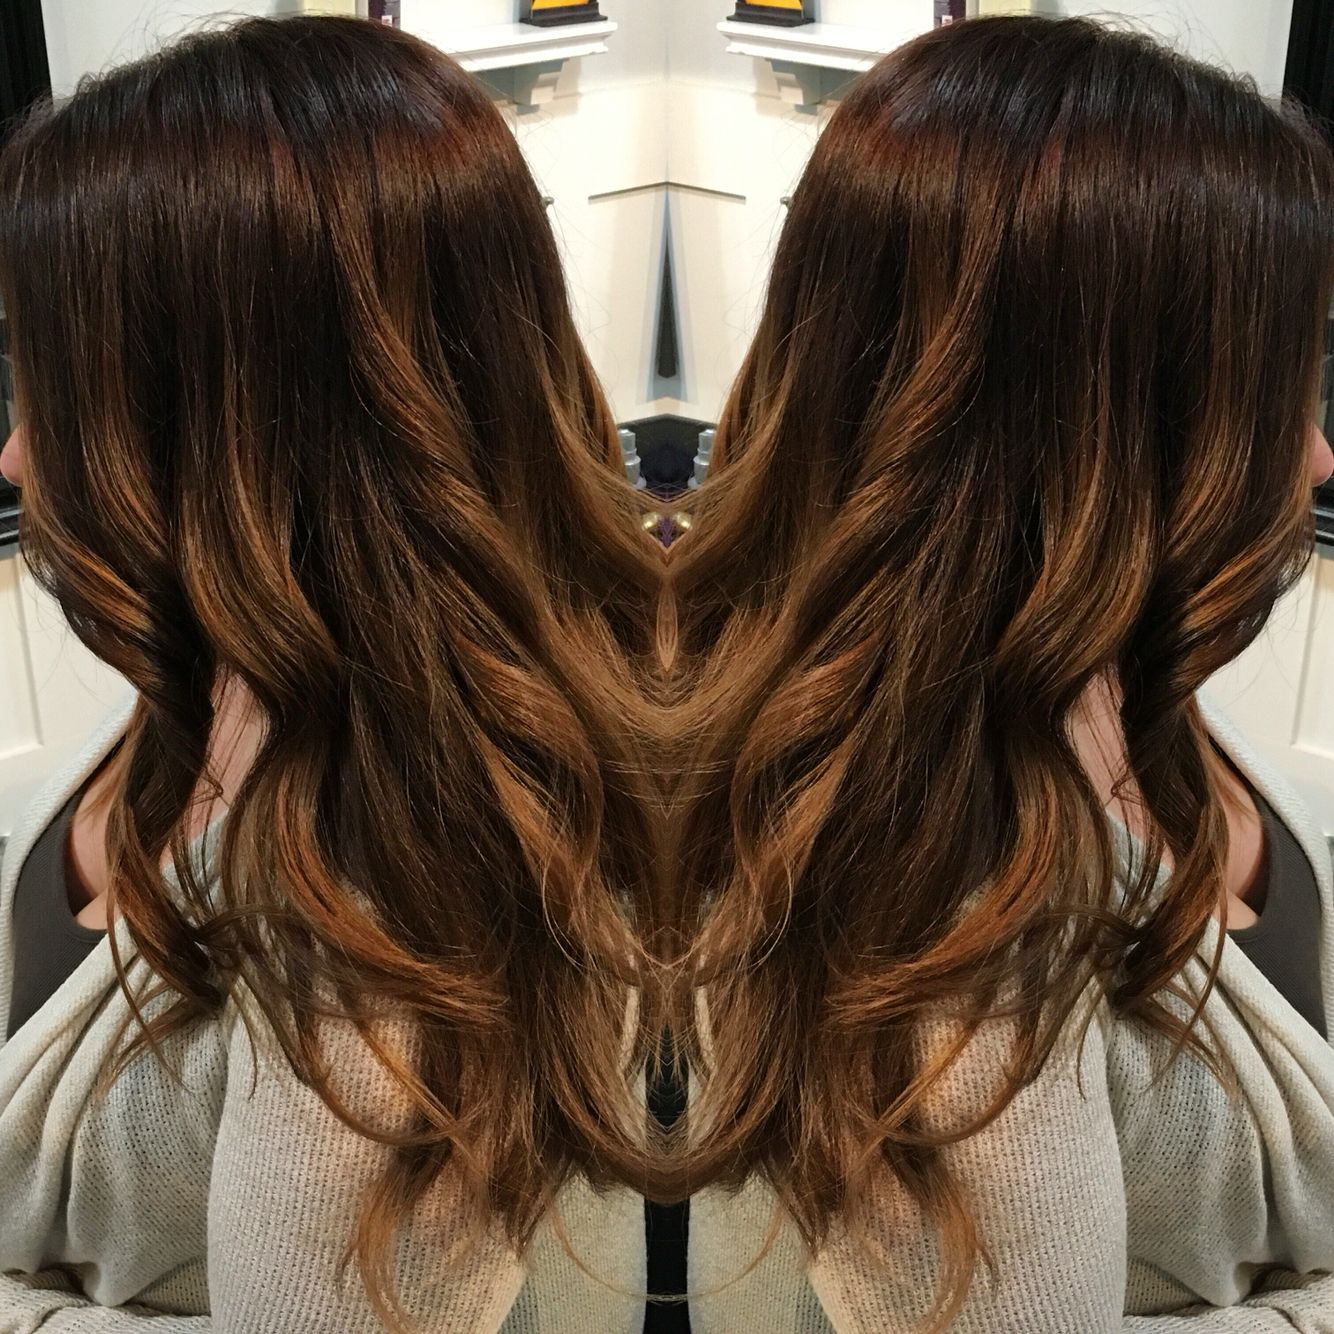 Rich Hair Color And Balayage Highlights Done By Shannon At The